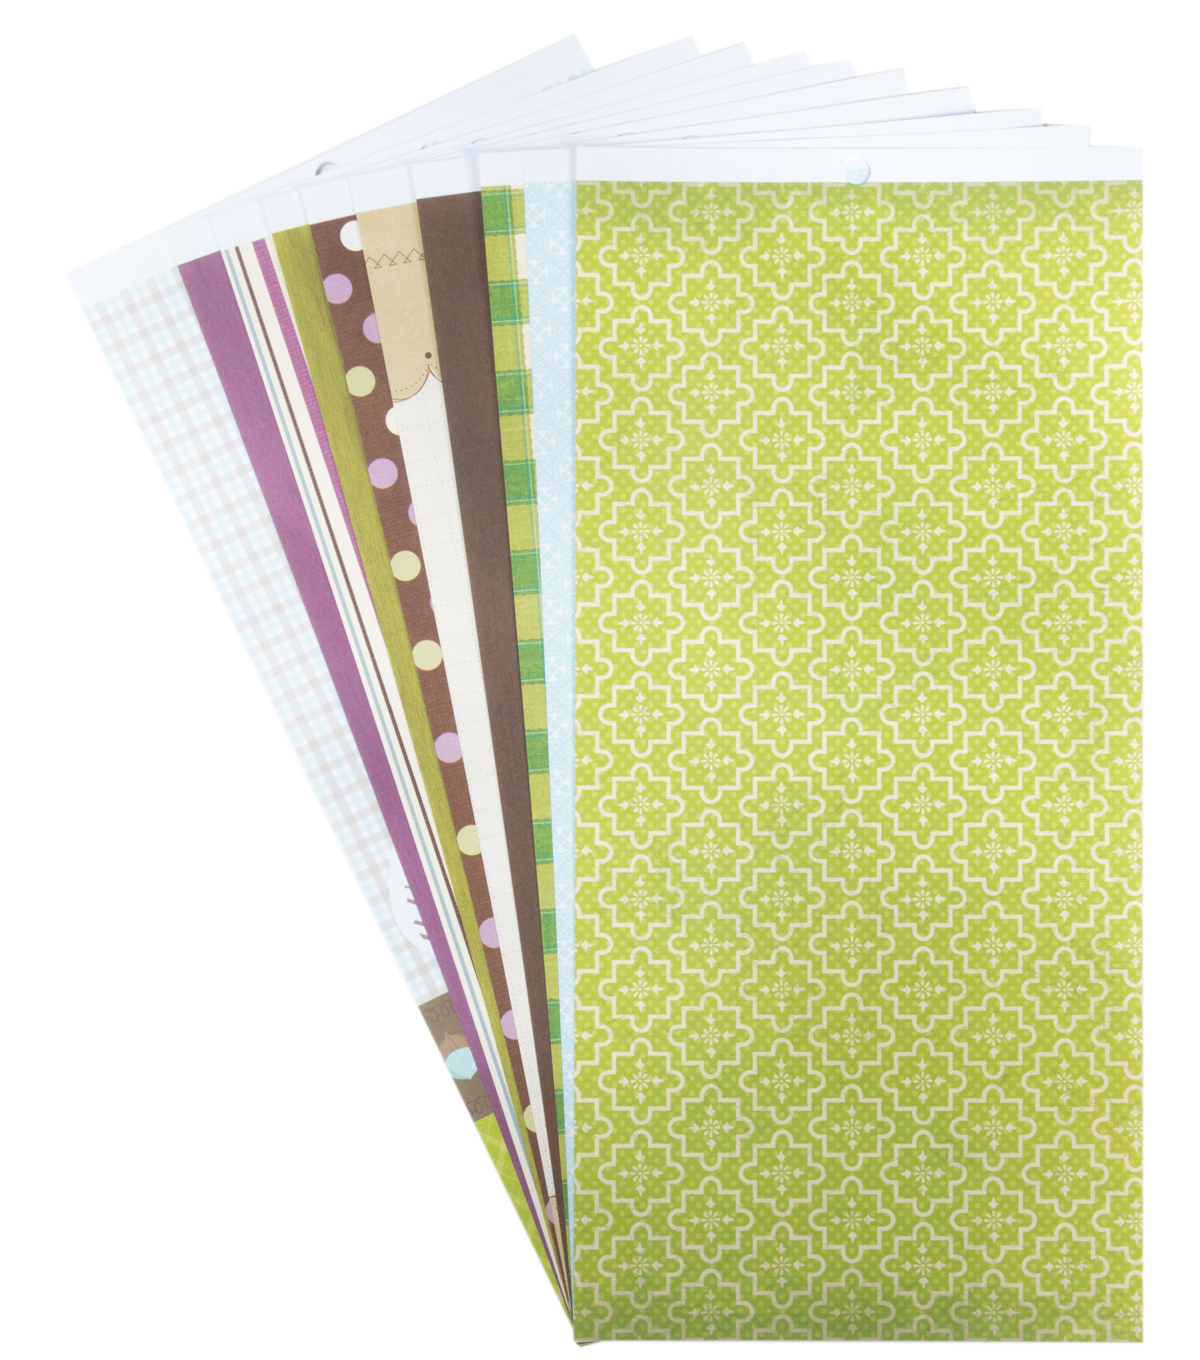 DCWV 6\u0022x12\u0022 Printed Paper Stack Purples Browns and Greens